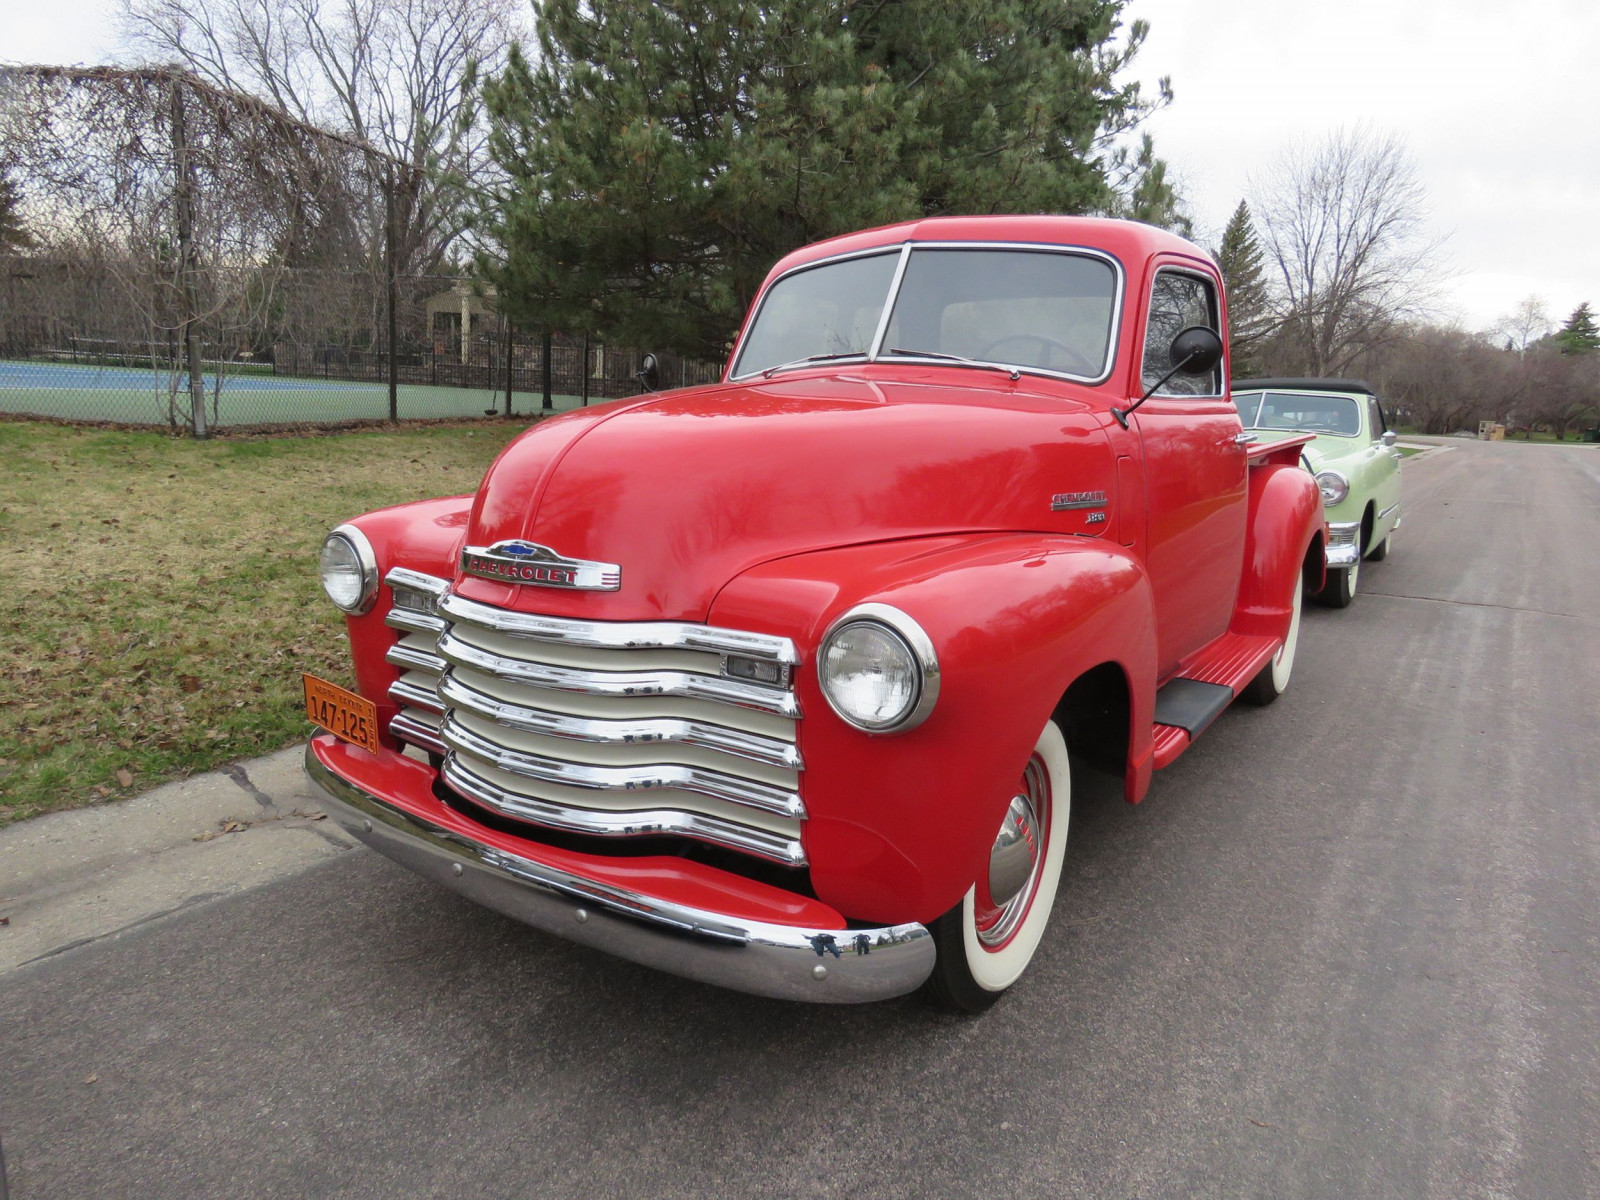 1950 Chevrolet 3100 5 window Pickup - Image 1